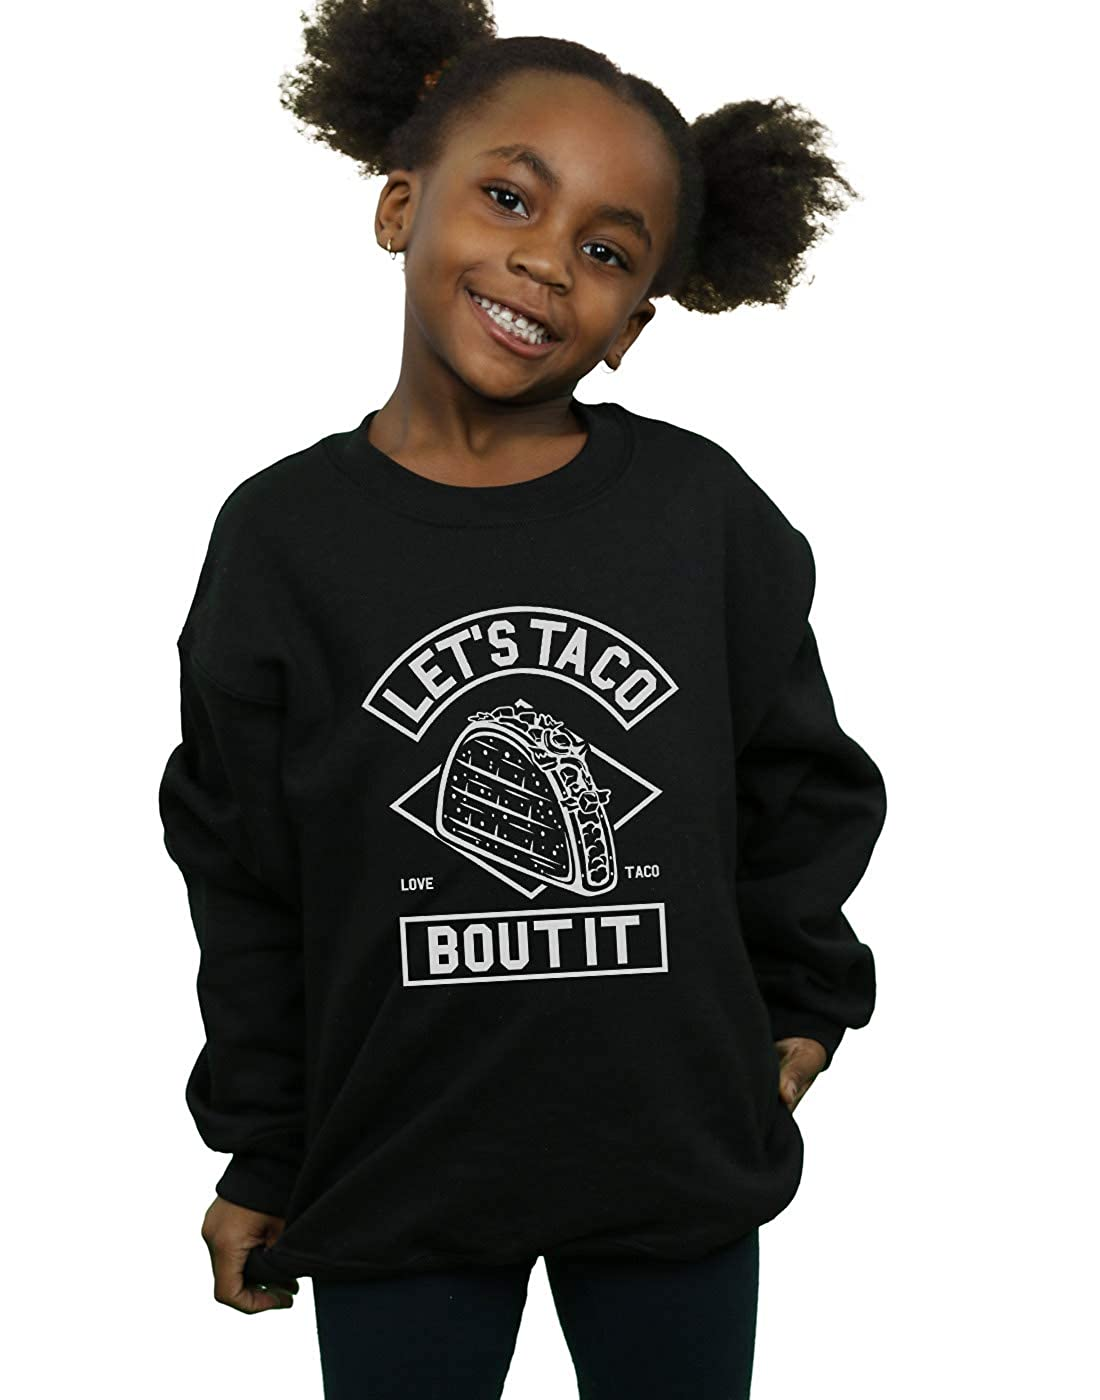 Absolute Cult Drewbacca Girls Lets Taco Bout It Sweatshirt